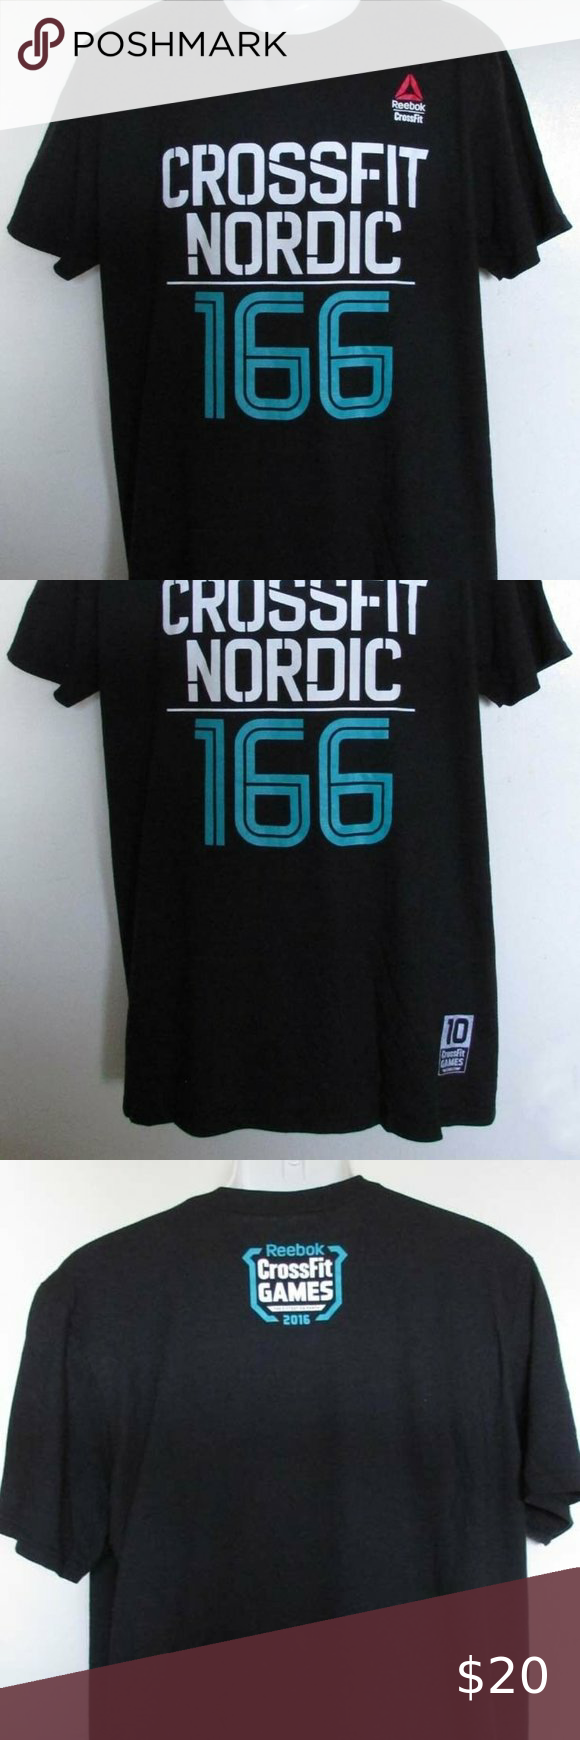 Reebok 2016 CrossFit Games Nordic #166 Men/'s Black T-Shirt